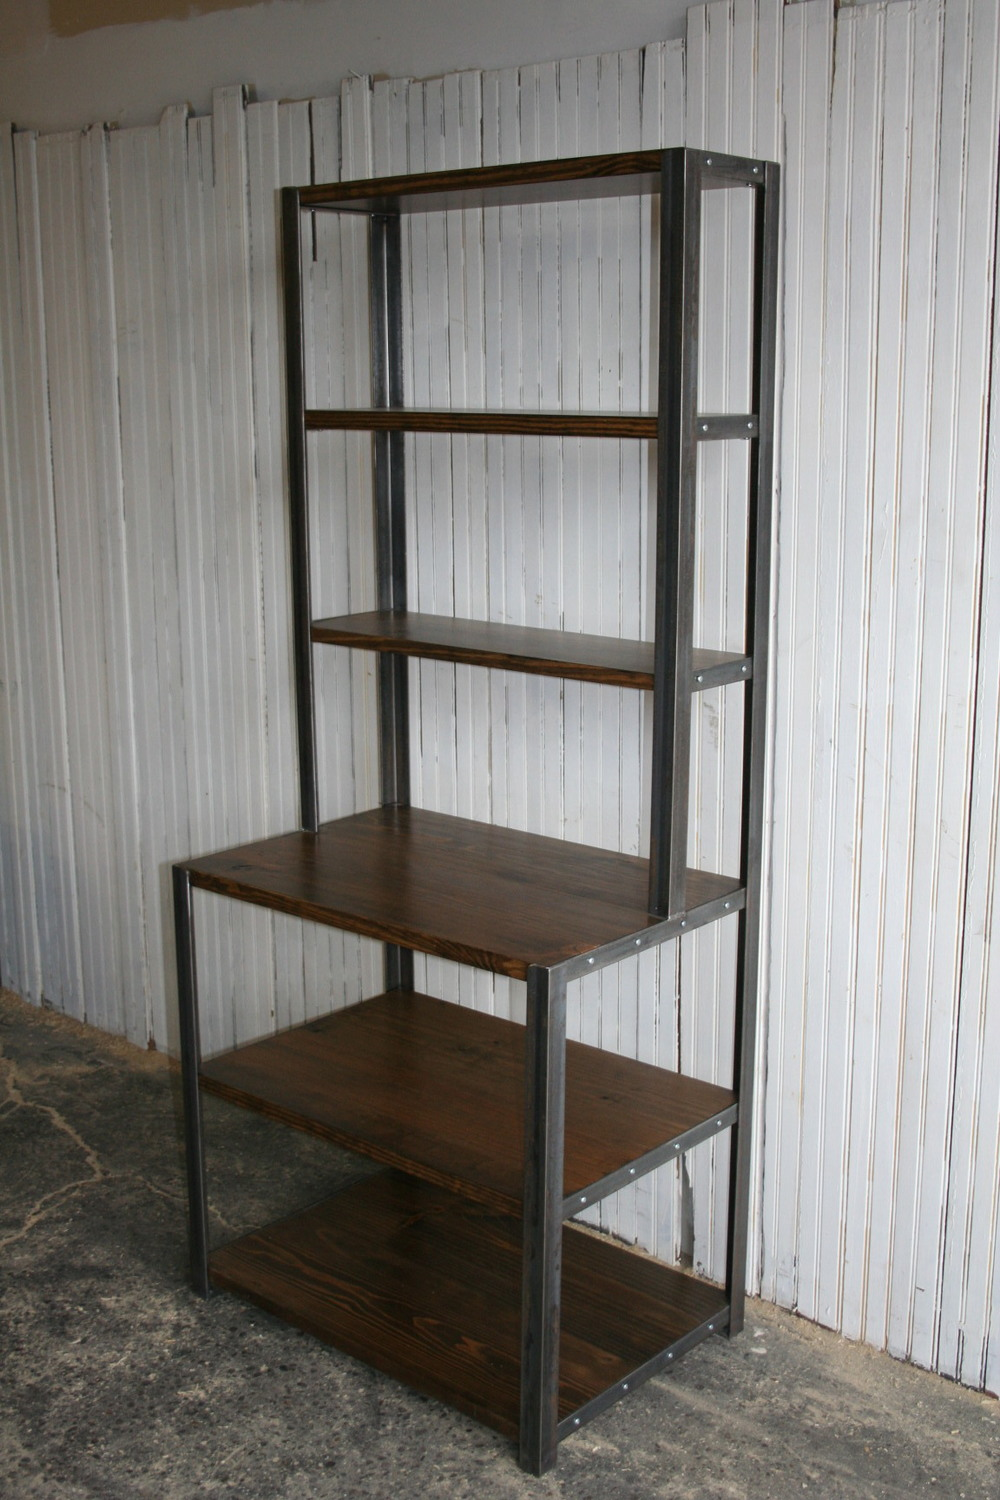 Step back bookcase